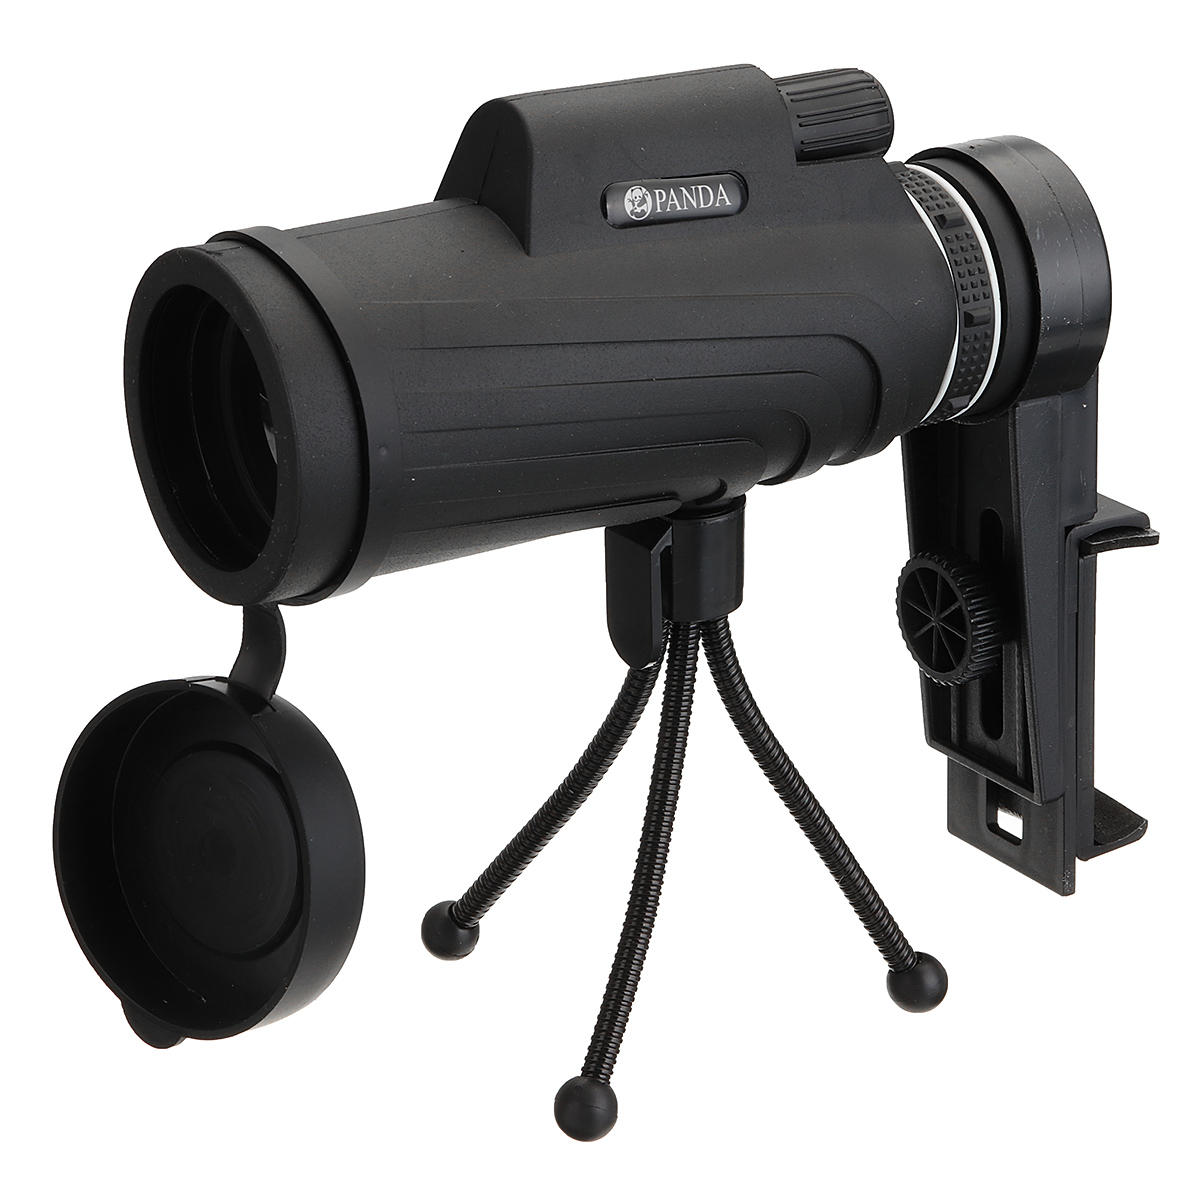 Panda 40x60 Waterproof Telescope Monocular for Smartphone with Phone Holder Clip +Tripod